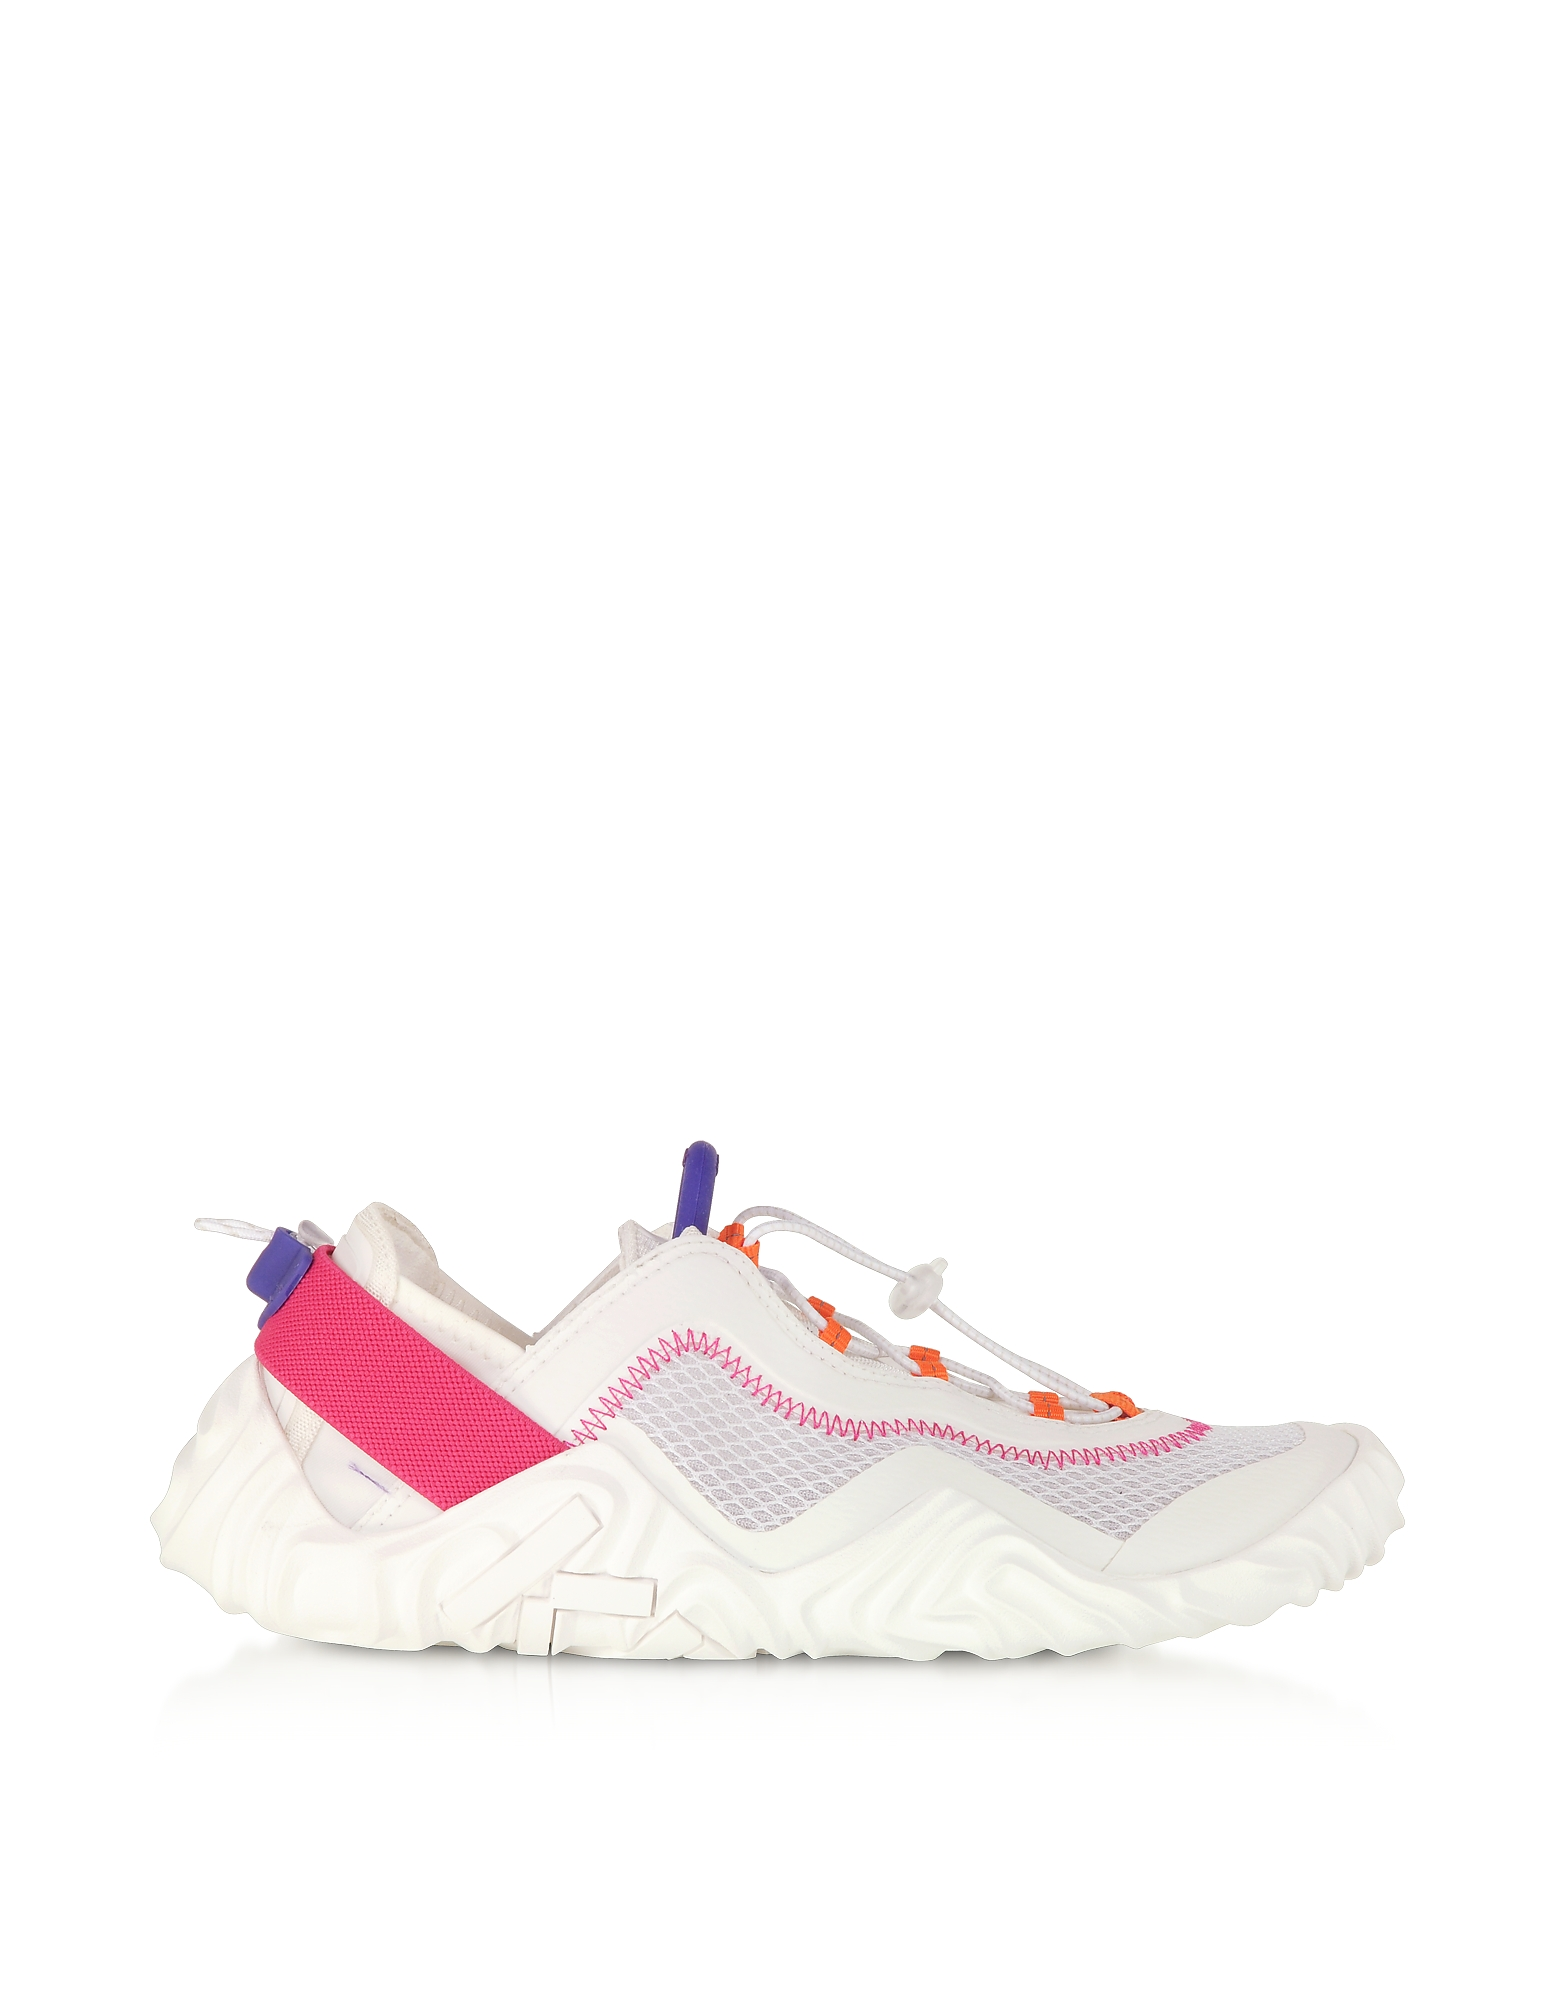 Kenzo Designer Shoes, White Mesh Kenzo Wave Low Top Sneakers